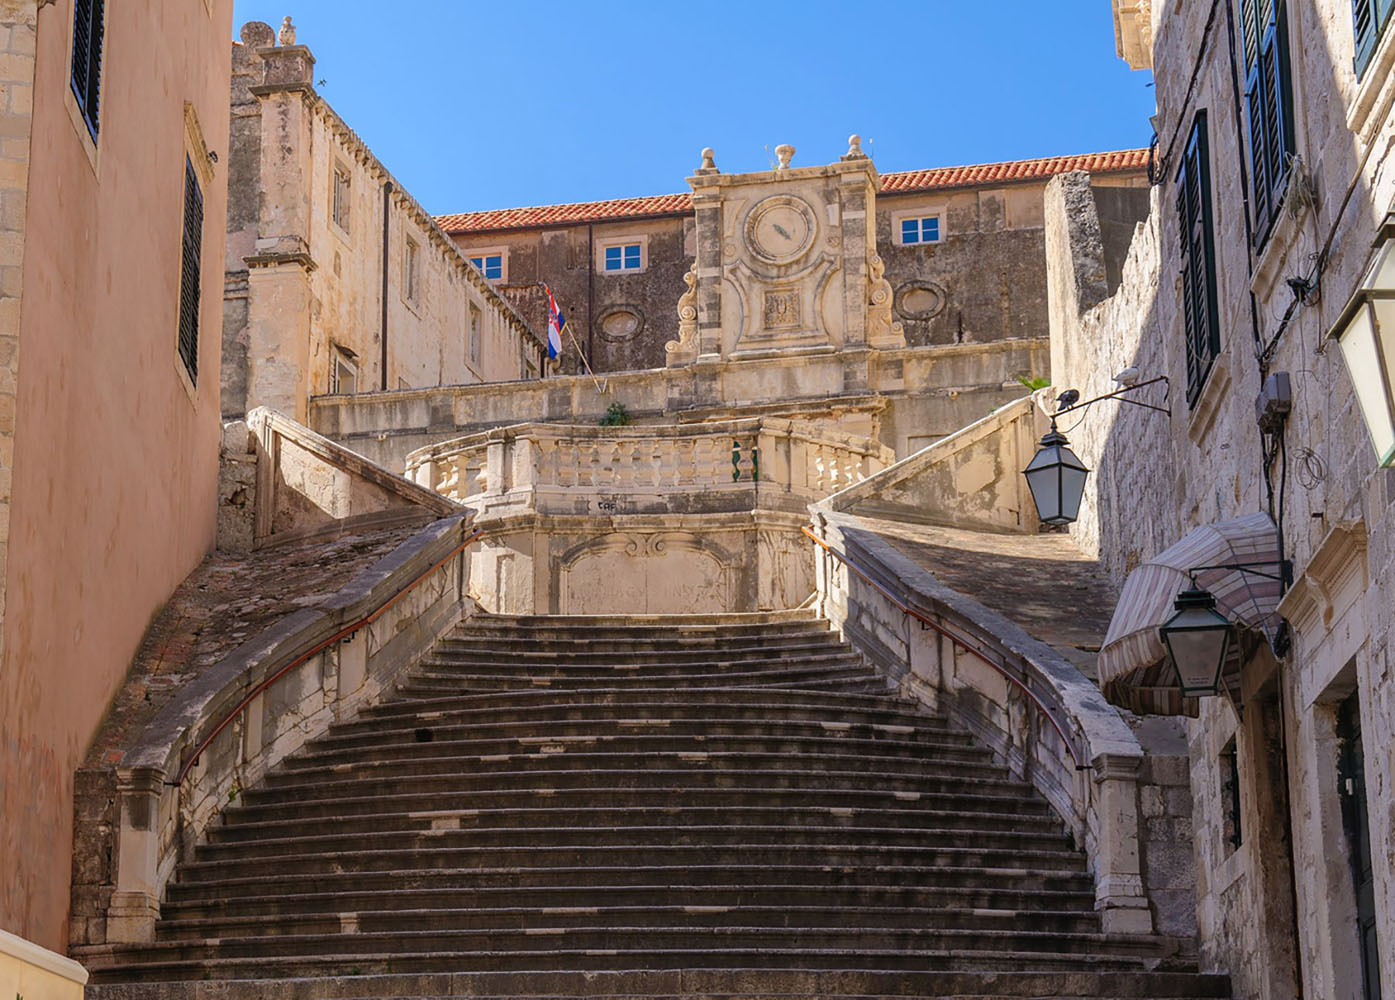 A staircase leading to the Jesuit Church of St. Ignatius Loyola in Dubrovnik